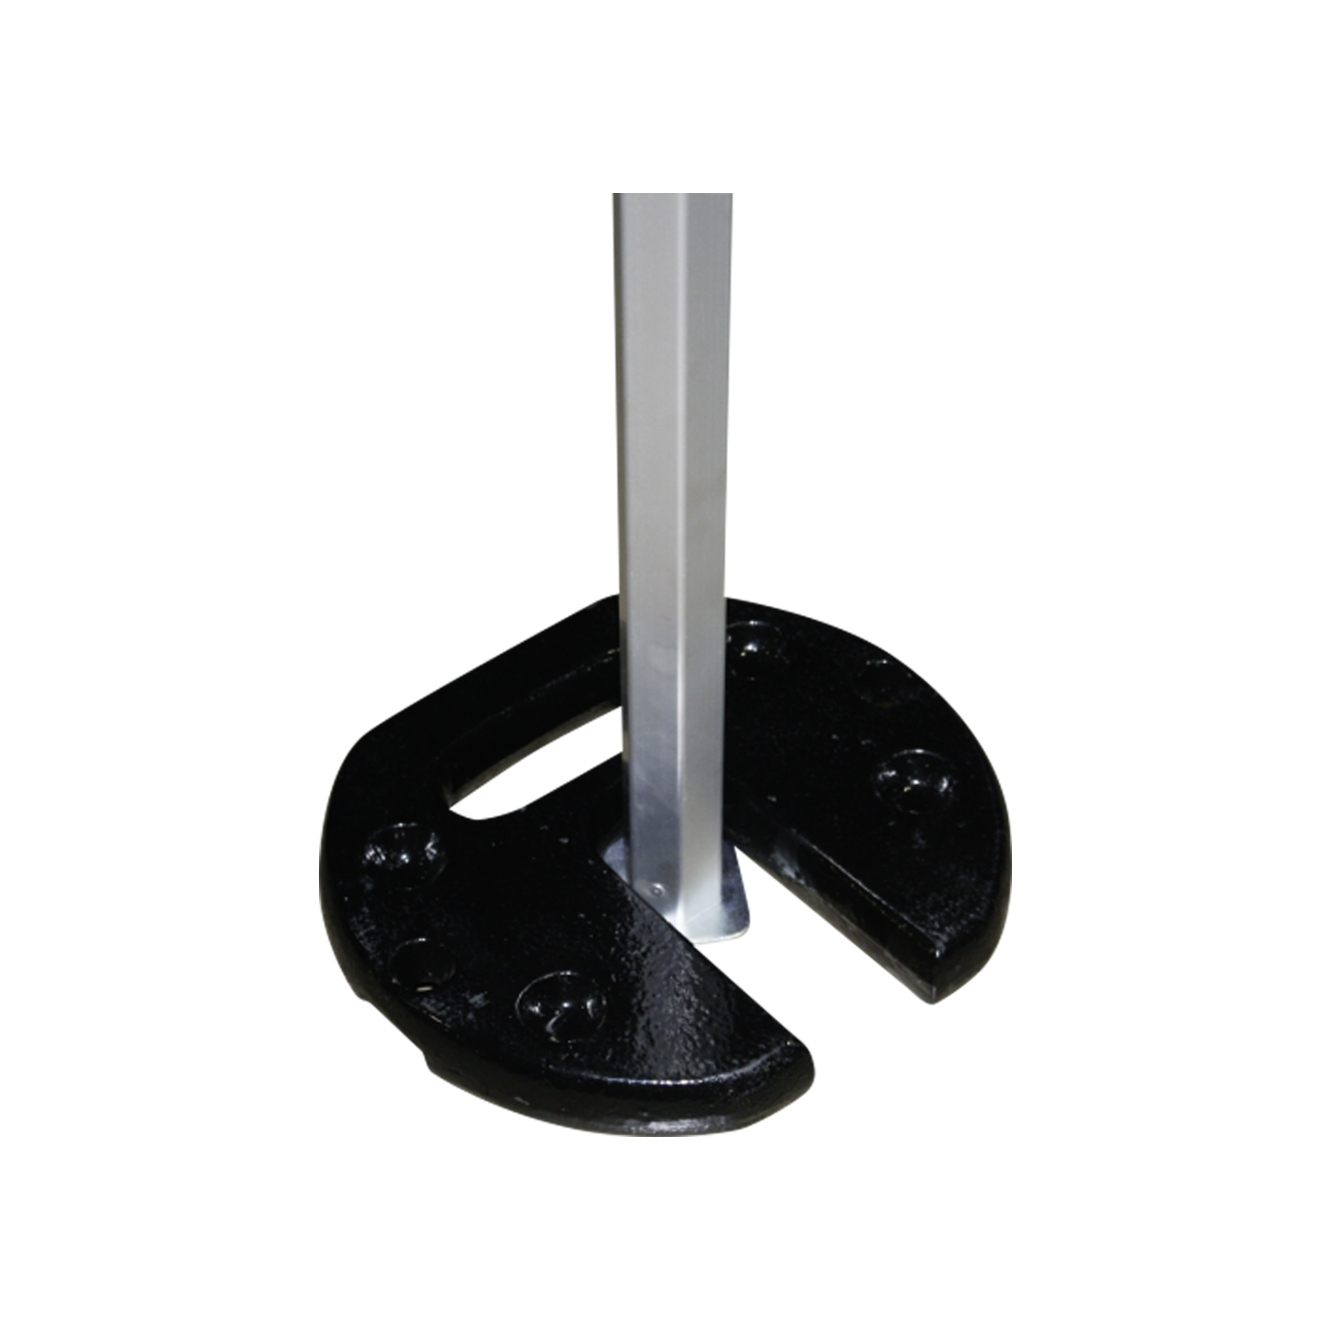 Steel Weighted Base for Tent